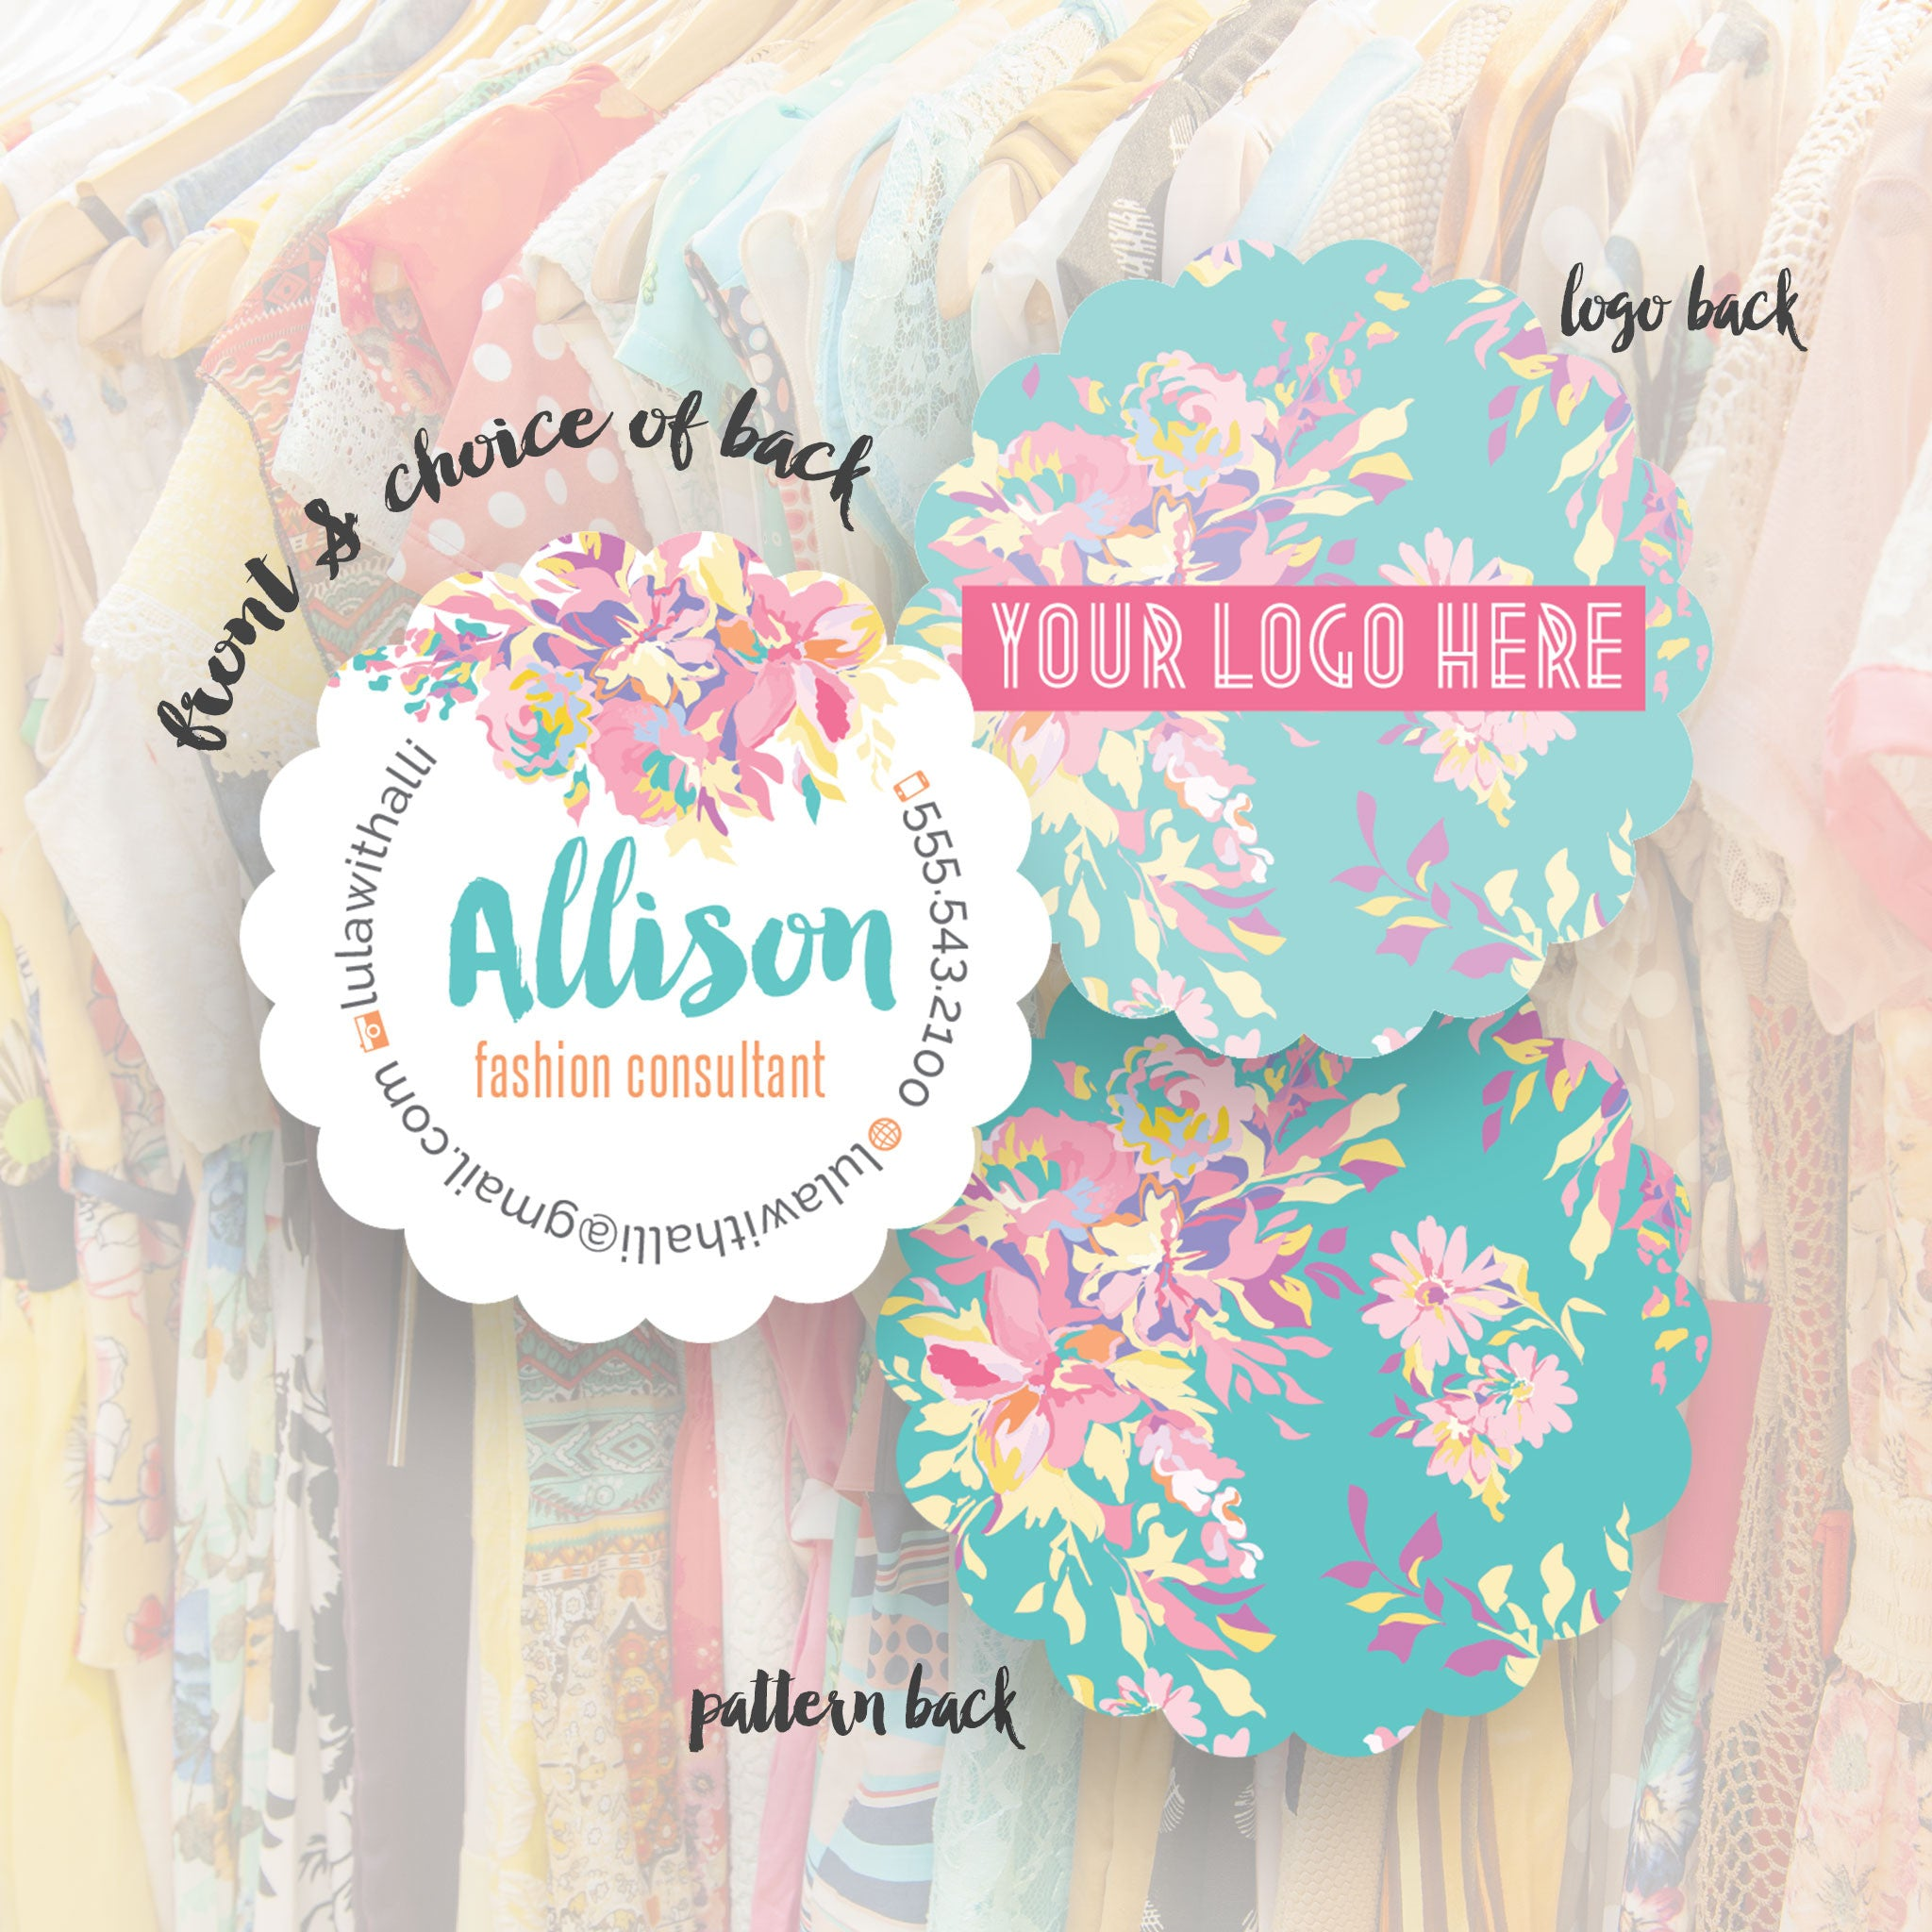 Lularoe business cards creative designs templates allison business cards reheart Gallery